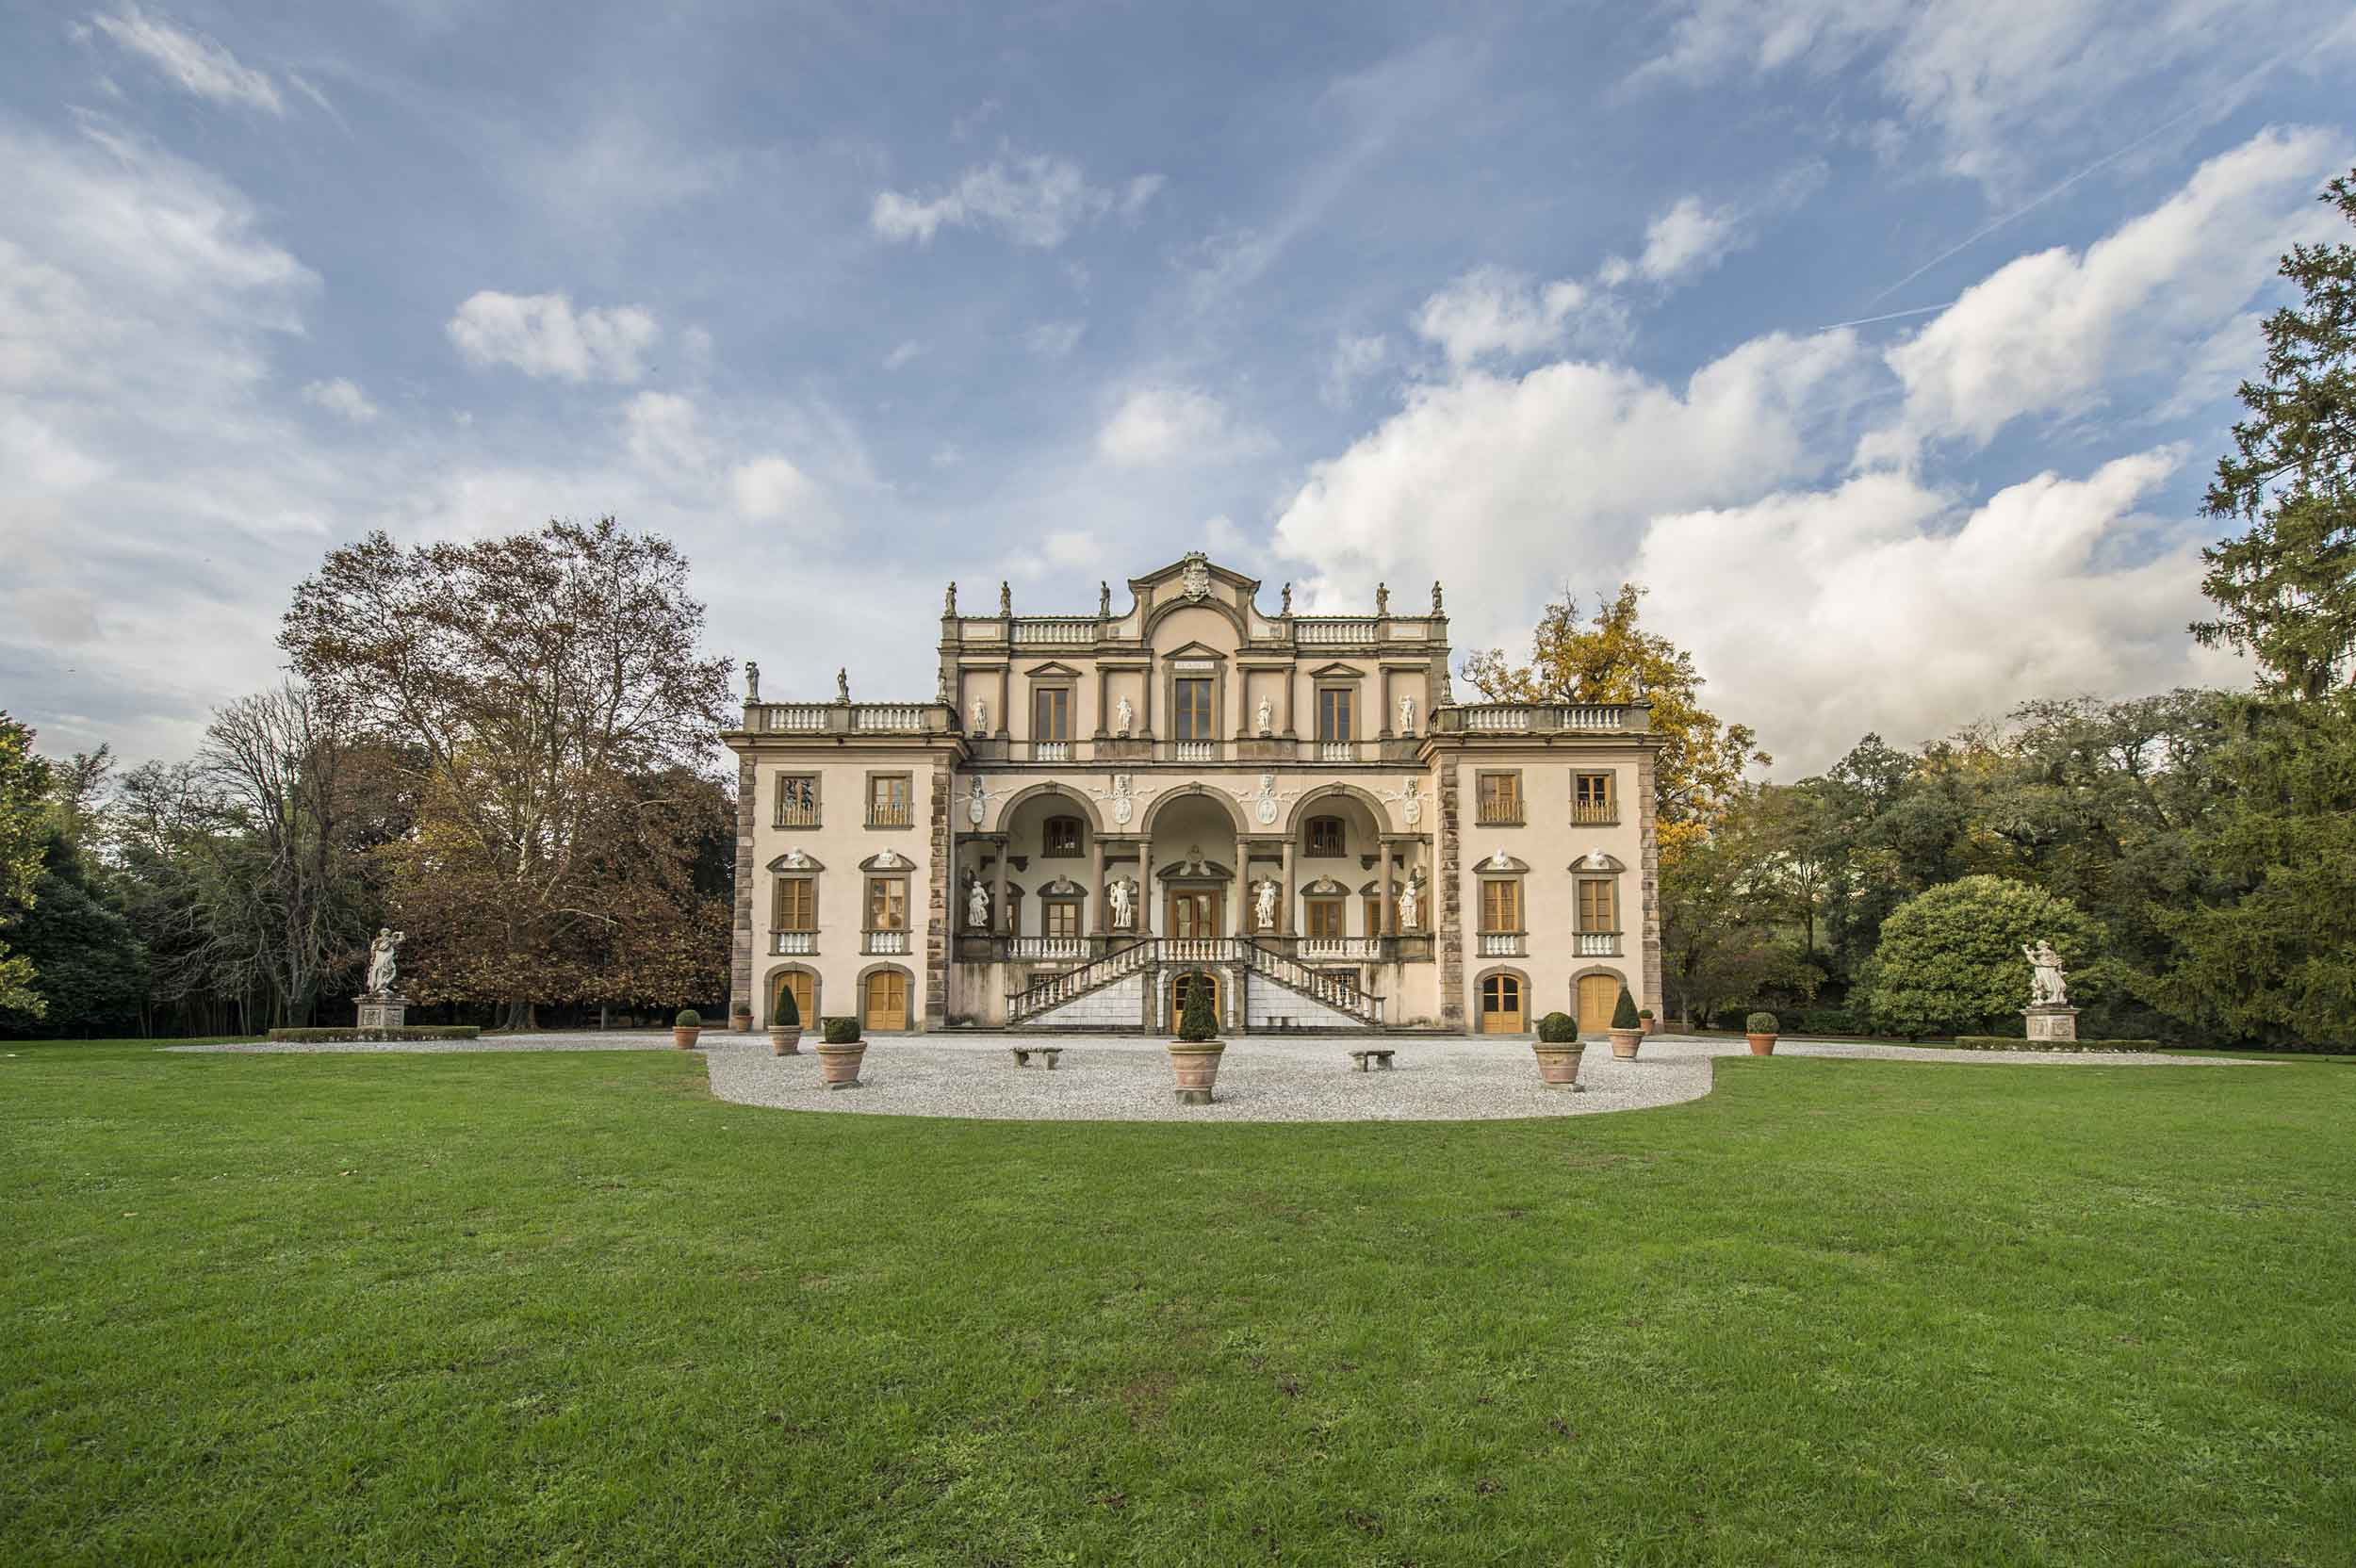 This Tuscan villa, with its magnificent Palladian architectural symmetry, is surrounded by landscaped parklands and Baroque gardens.